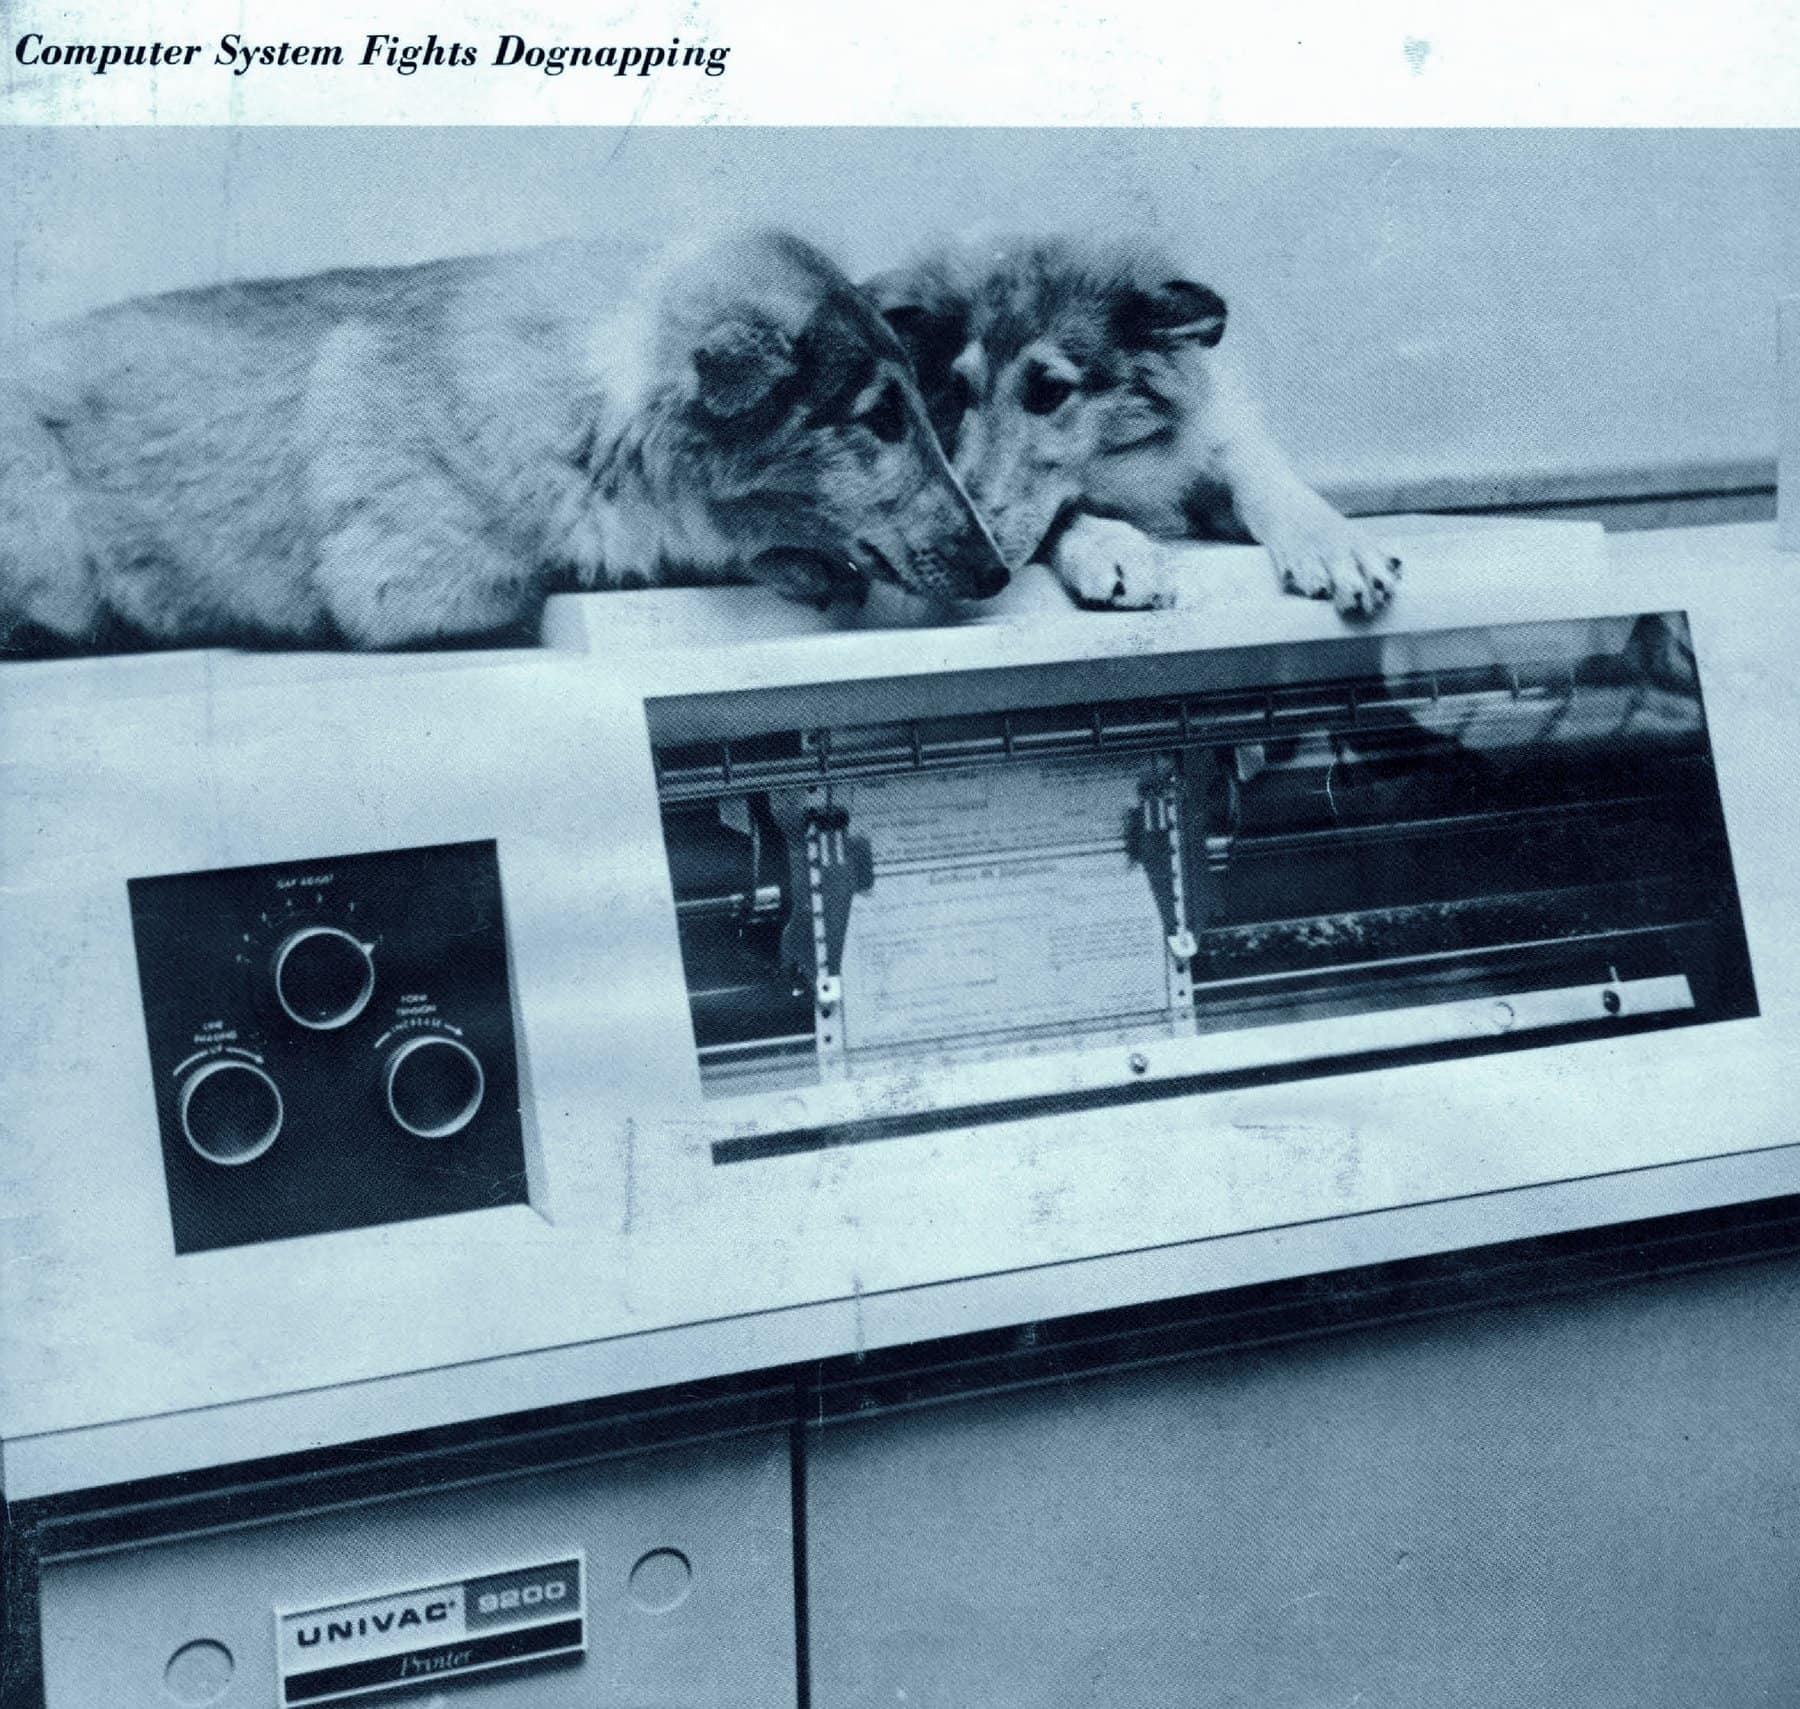 Computer system fights dognapping - 1969-1970